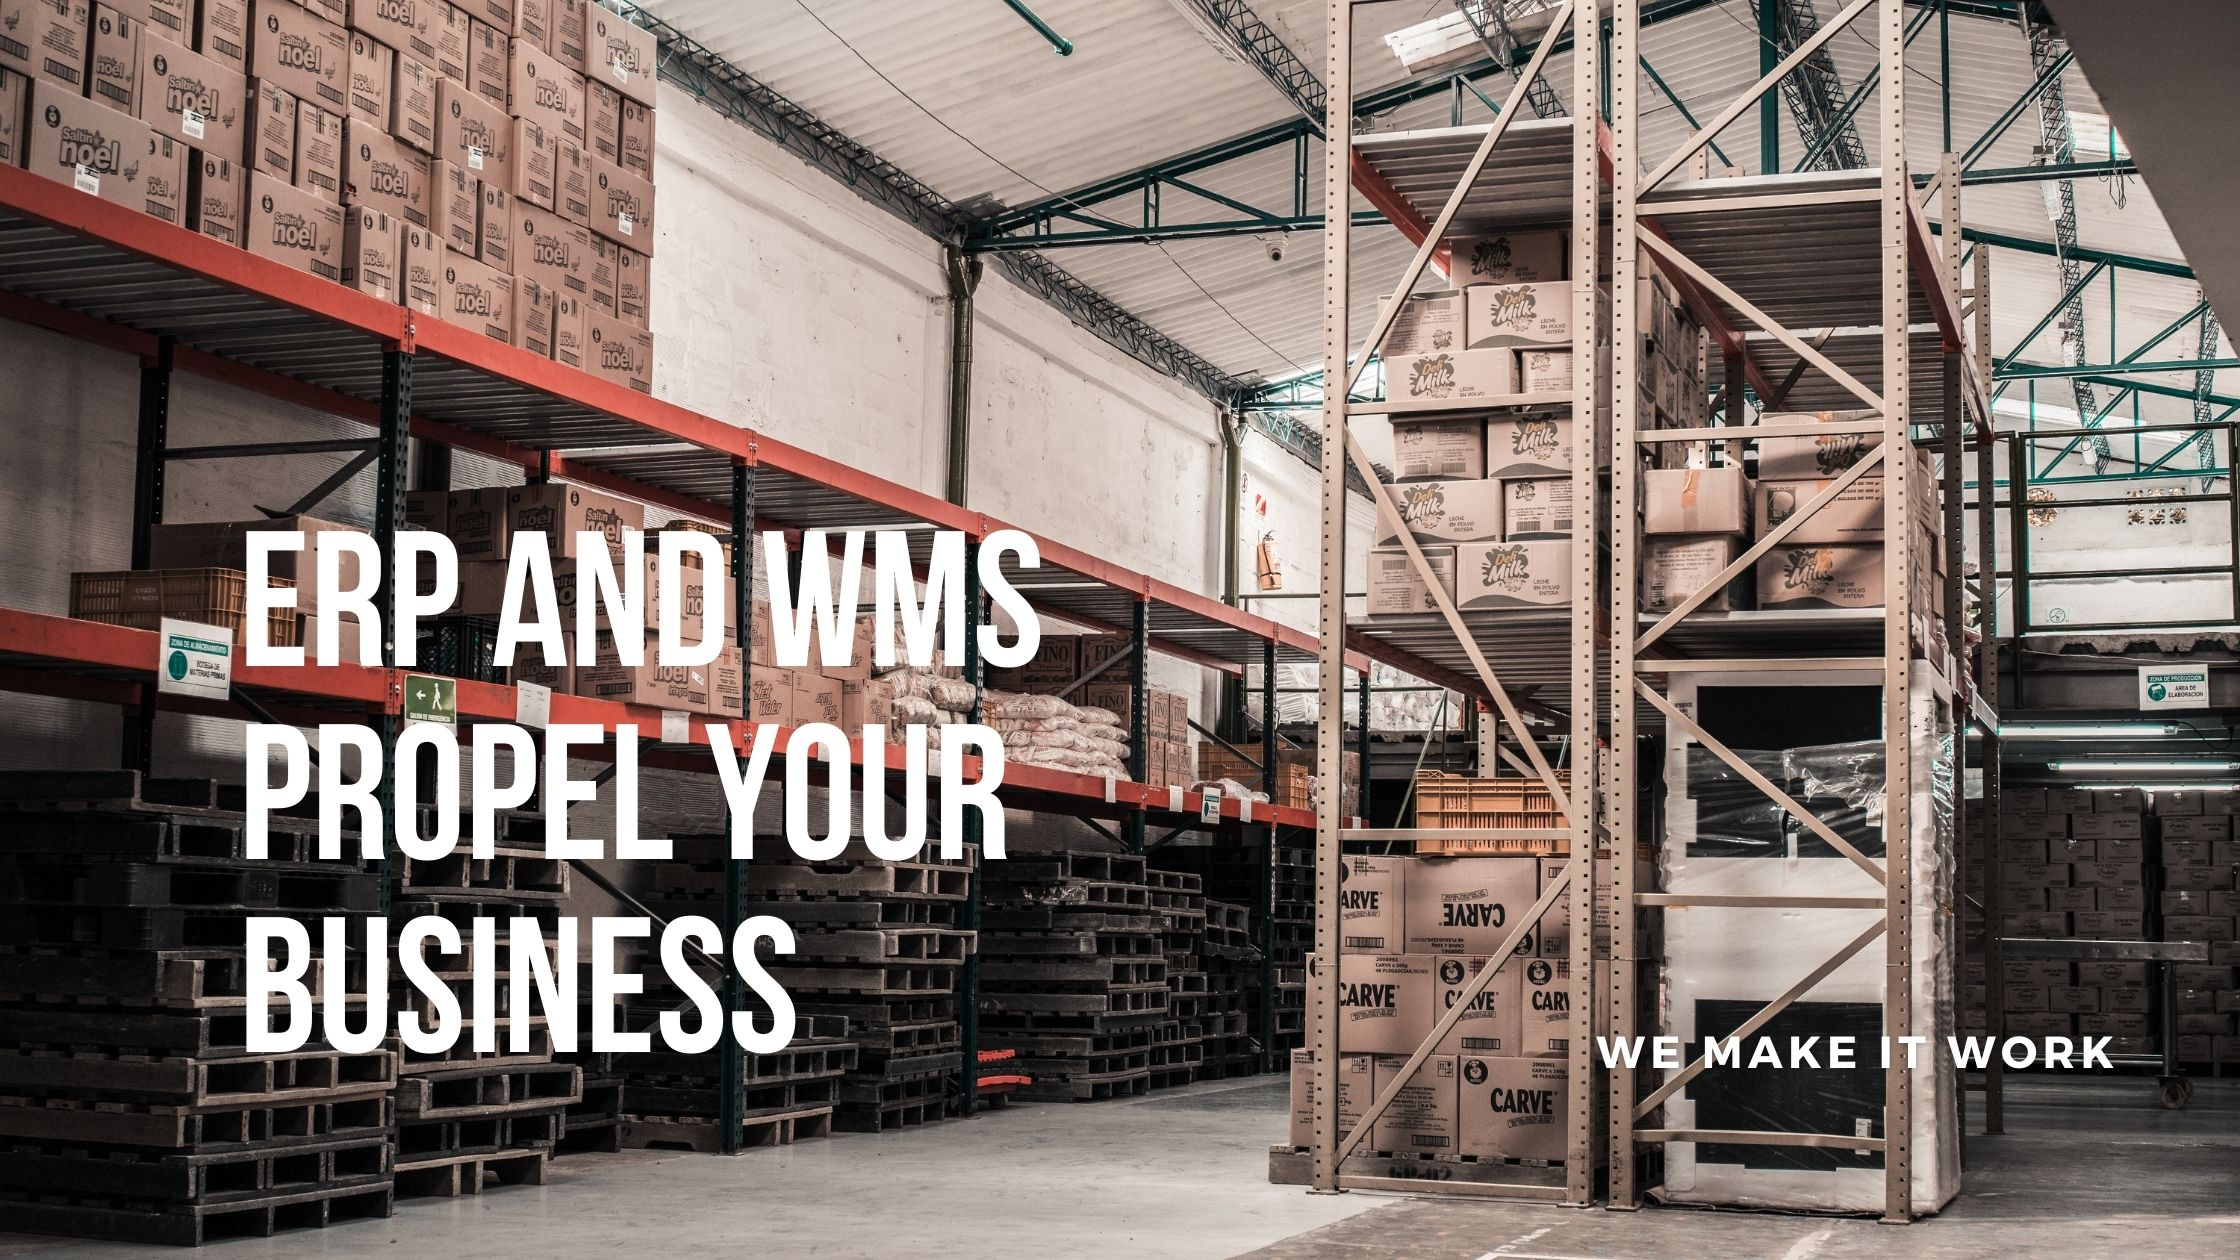 ERP and WMS software propel your business   BeyondERP